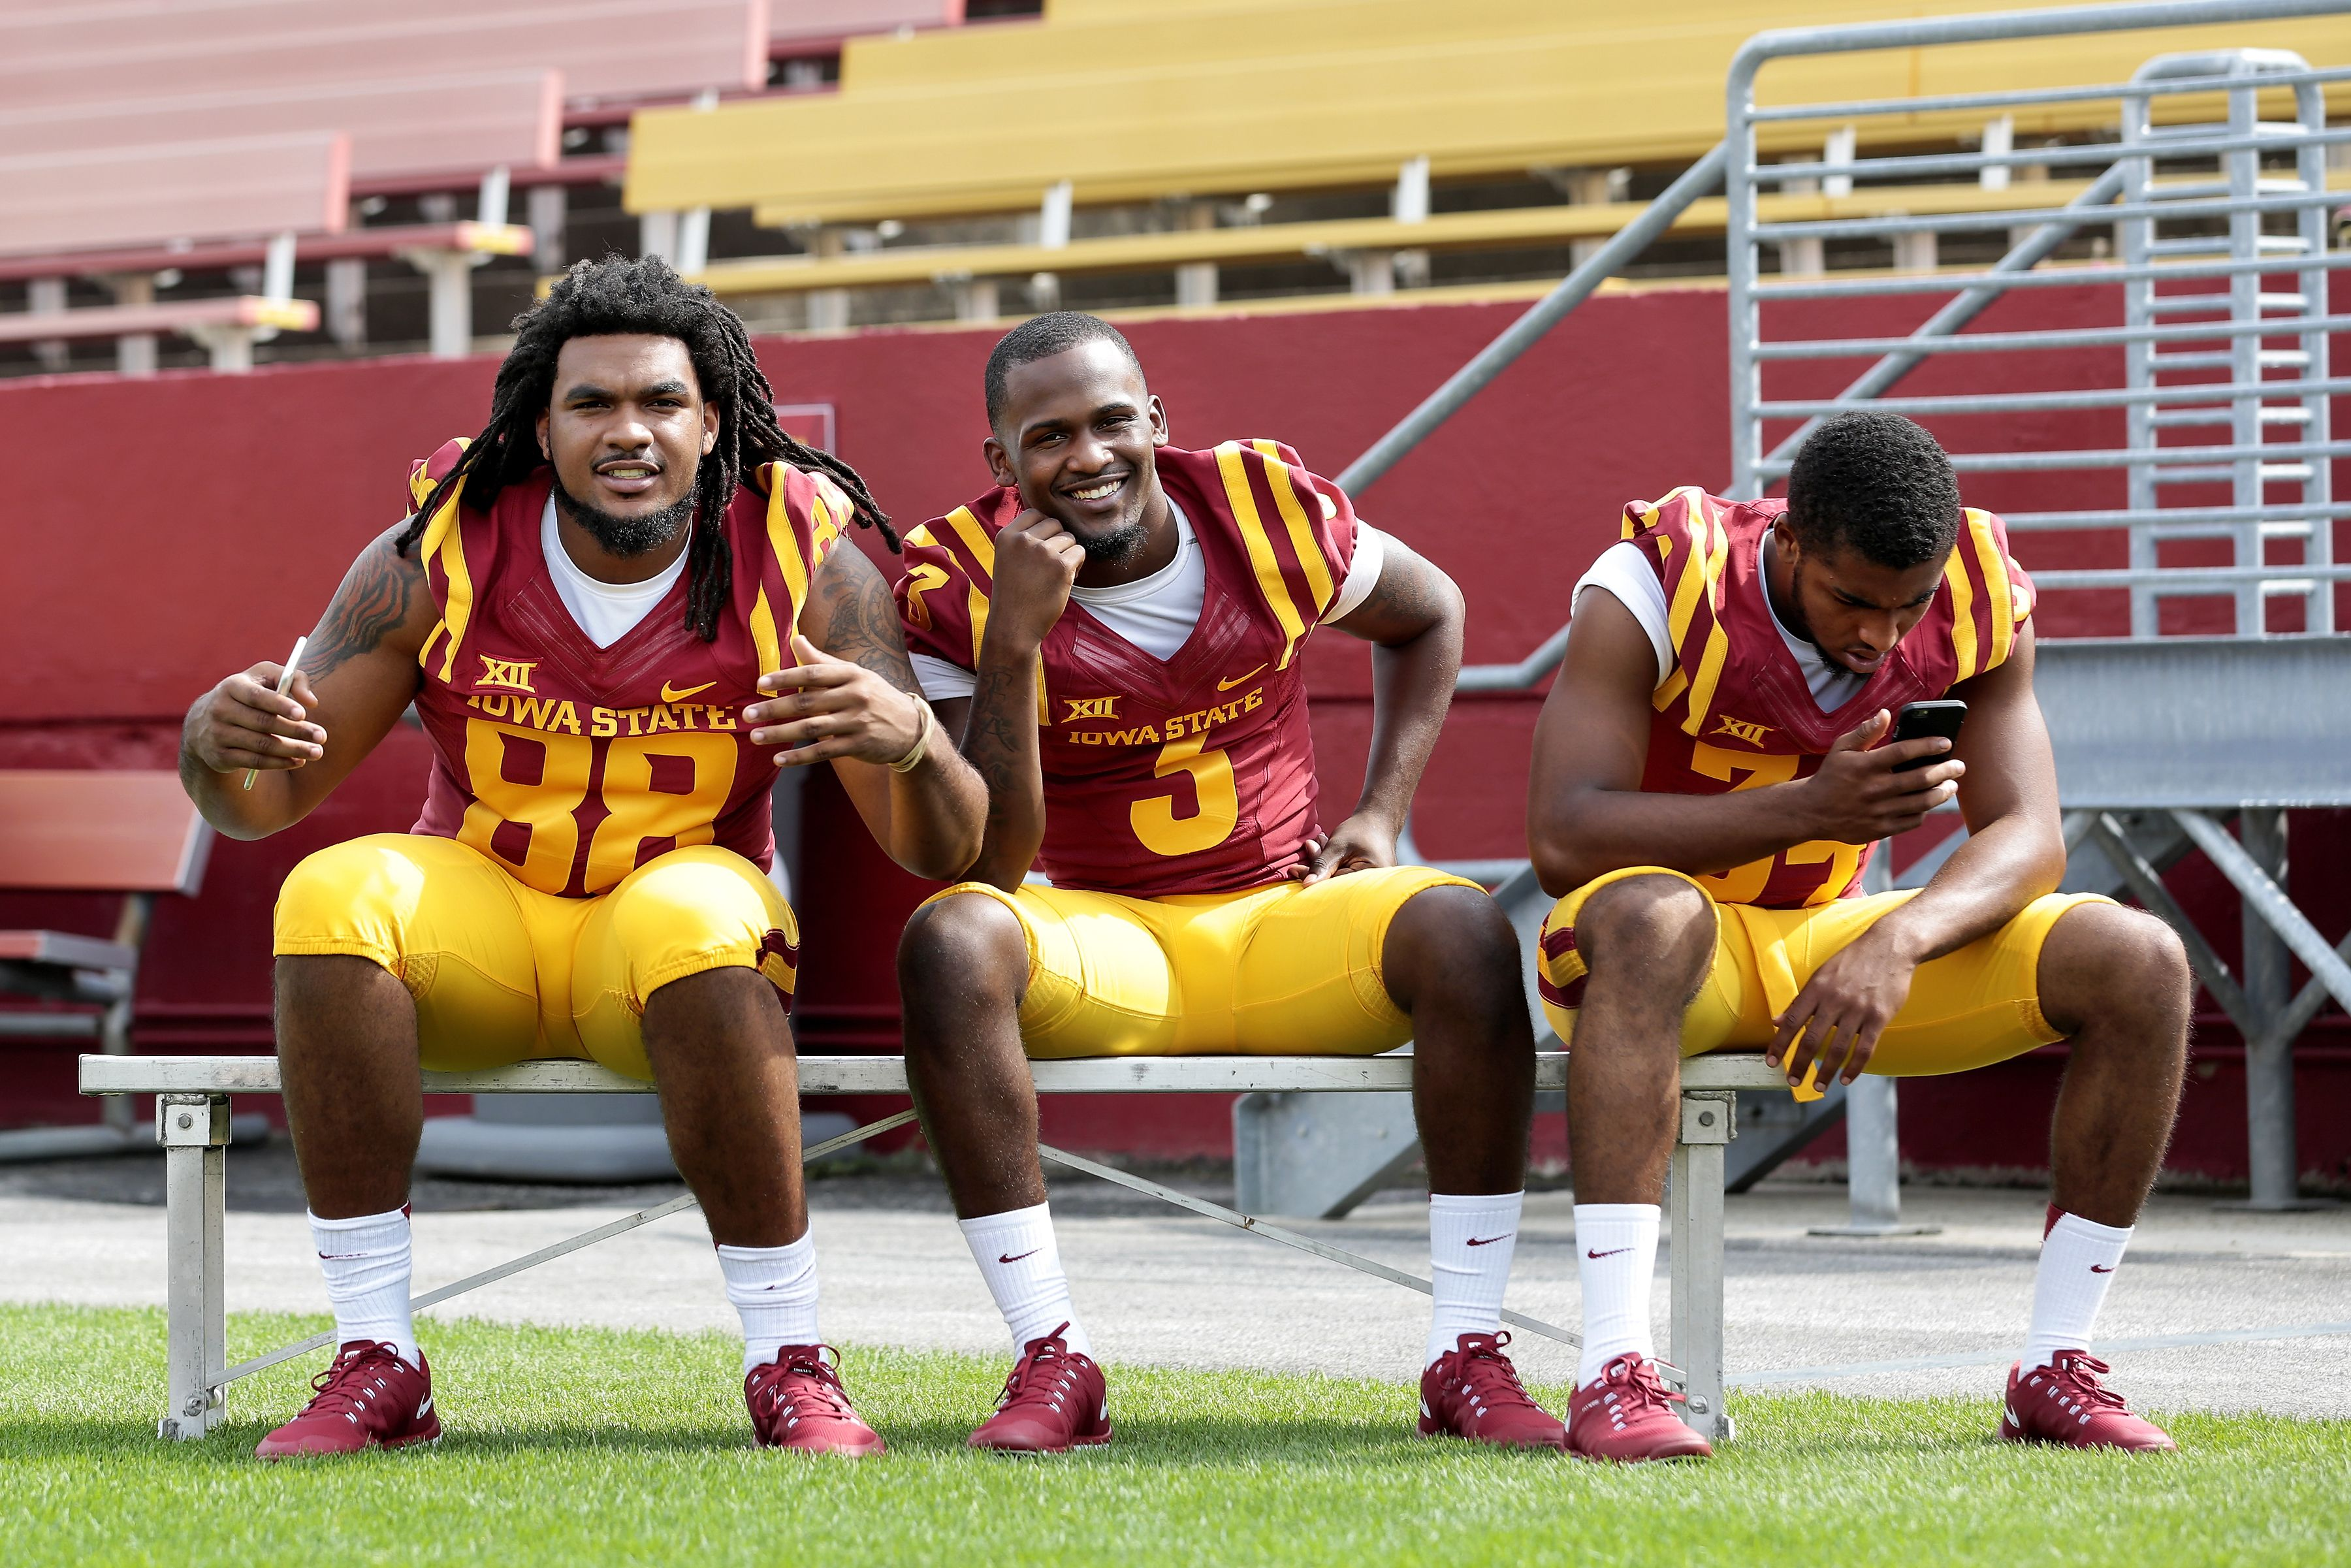 Iowa State S Justin Chandler Mike Johnson And Nigel Tribune Take In Media Day On Thursday Photo By Bria Football Notebook Iowa State Cyclones Sport Football